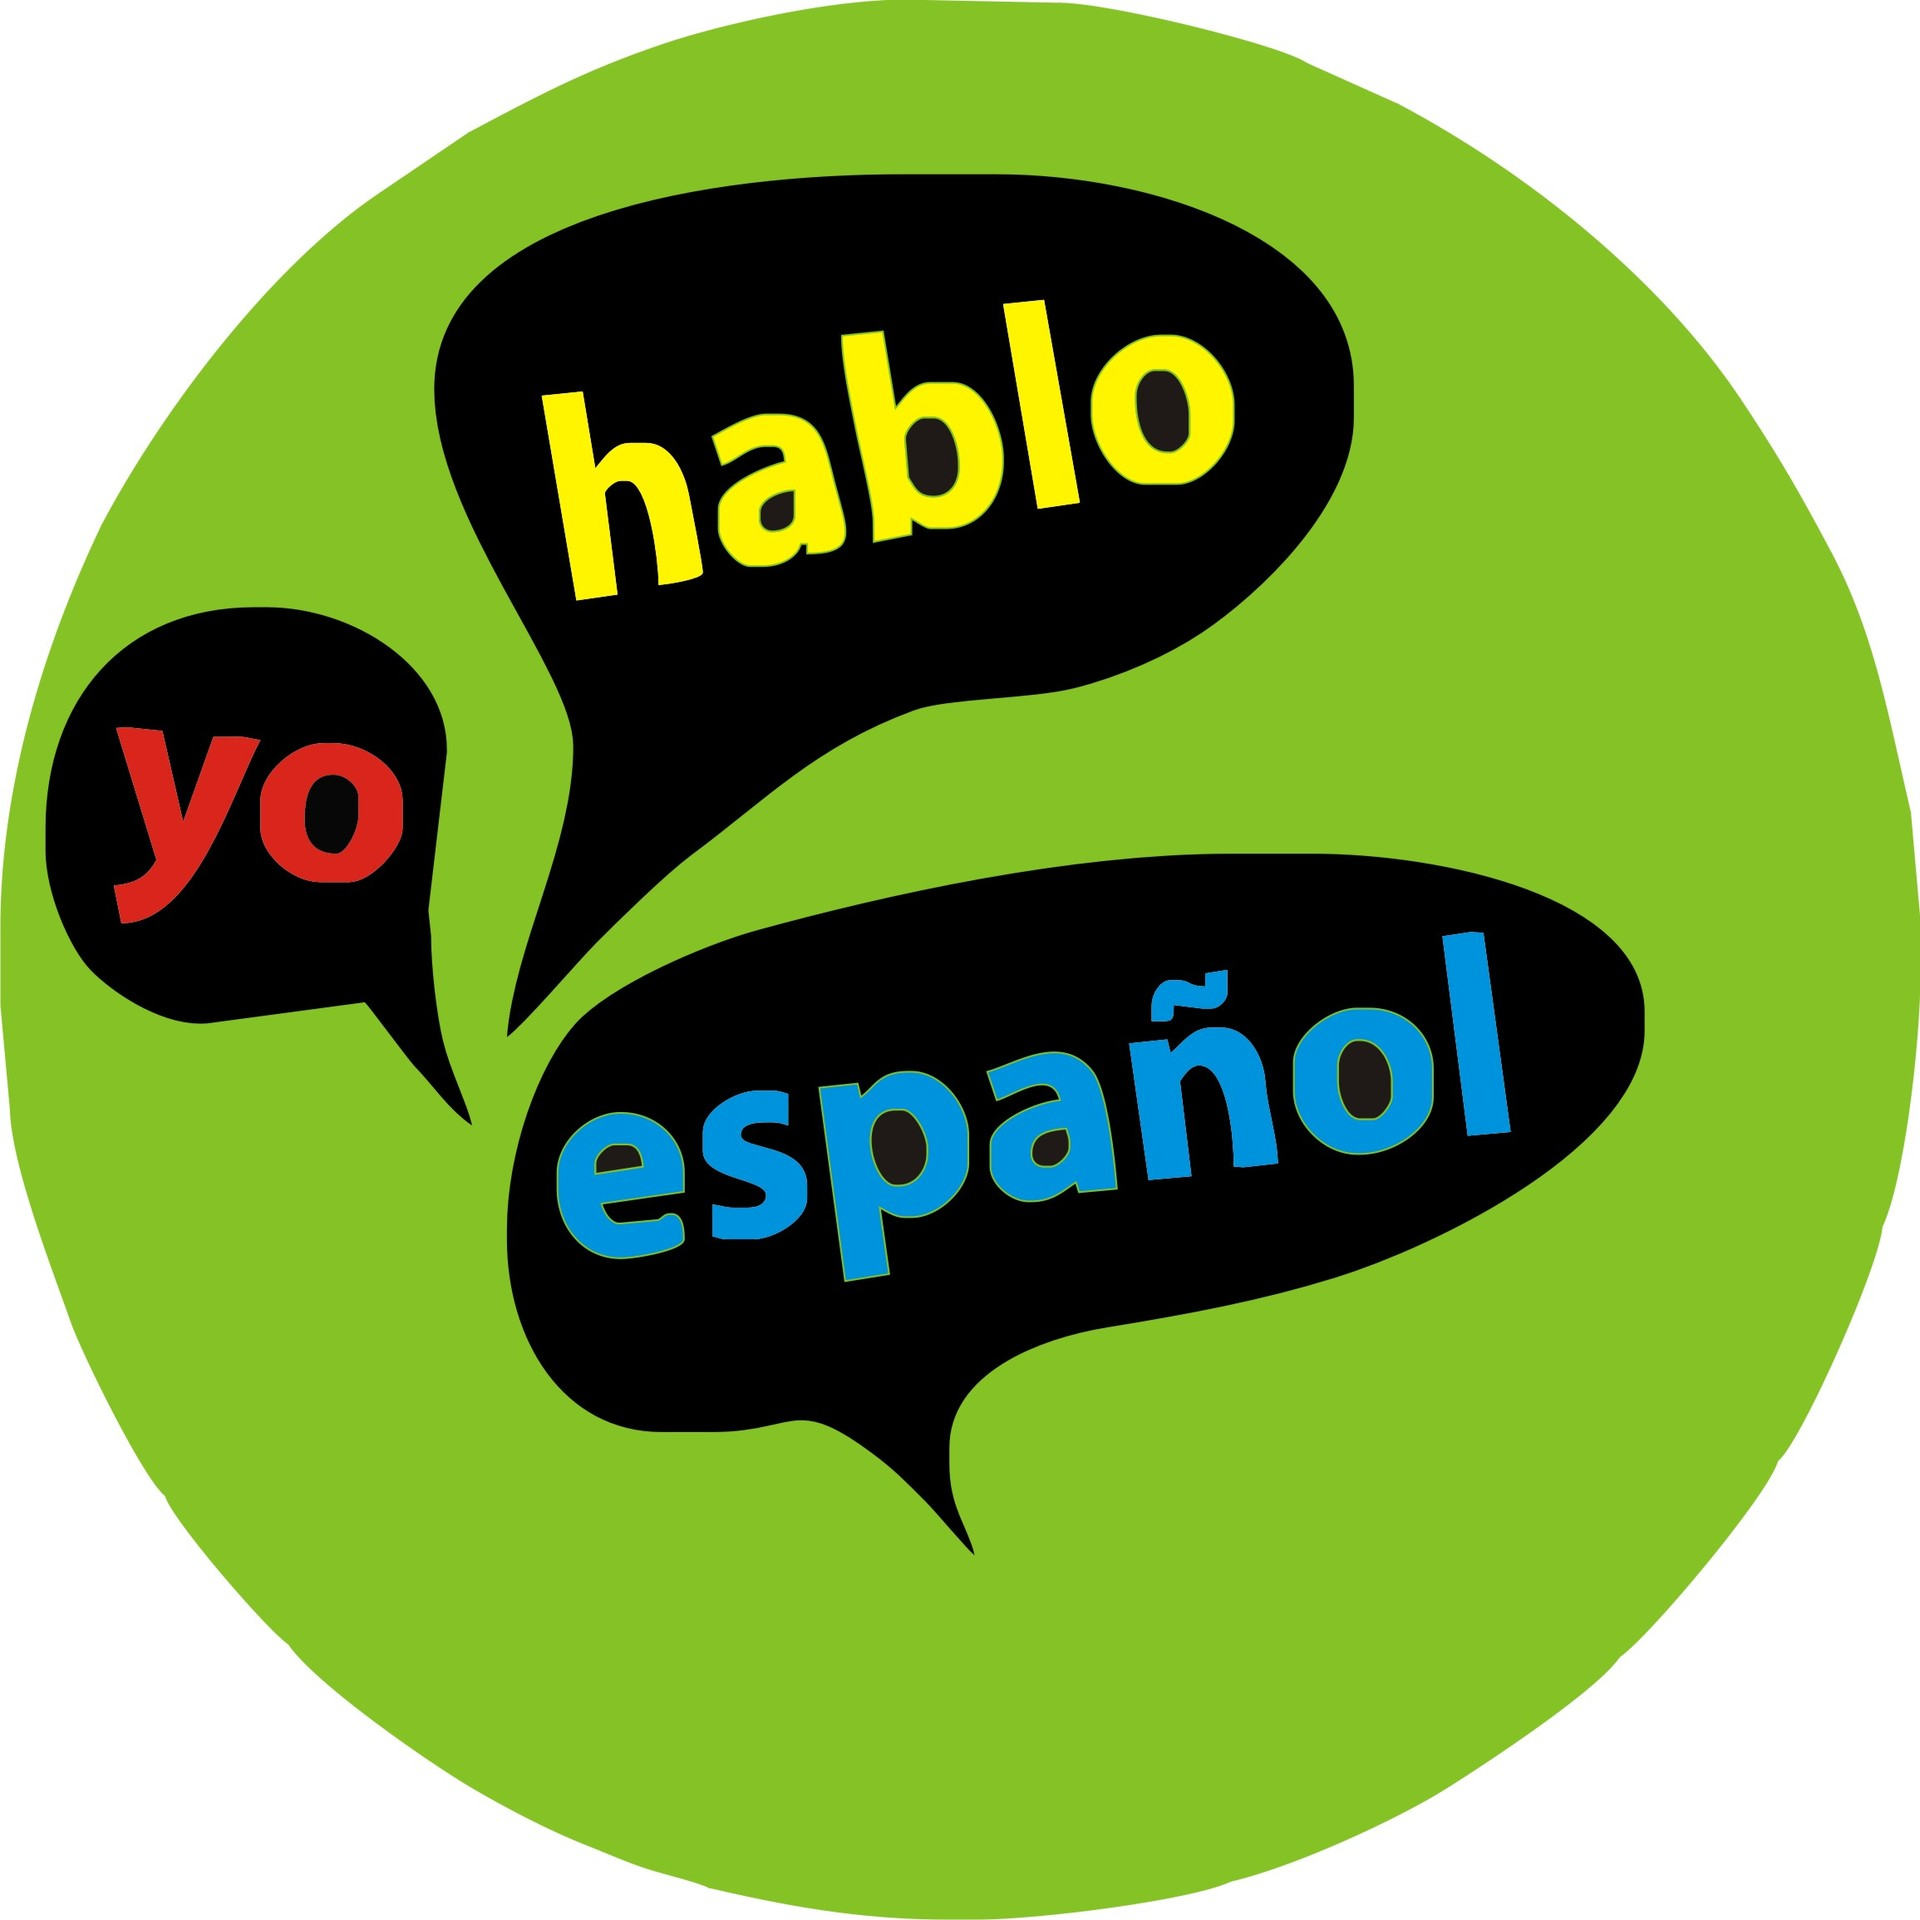 yo hablo espanol in thought bubbles inside green circle